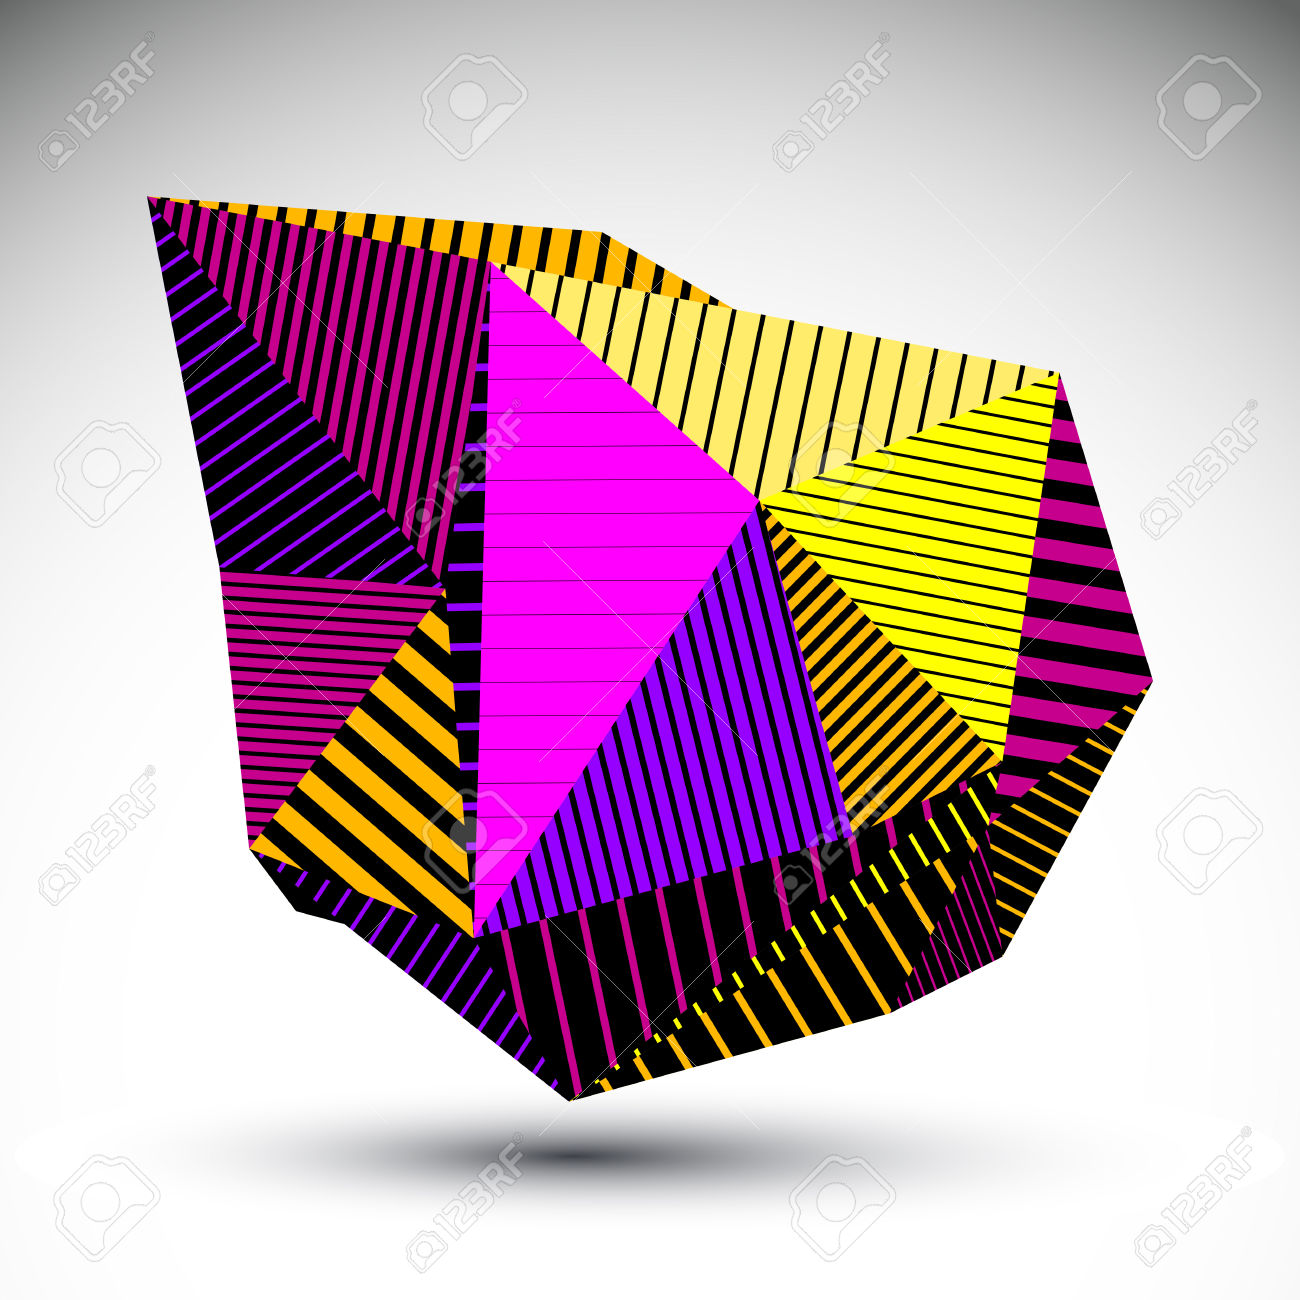 Multifaceted Eps8 Asymmetric Contrast Figure With Parallel Lines.